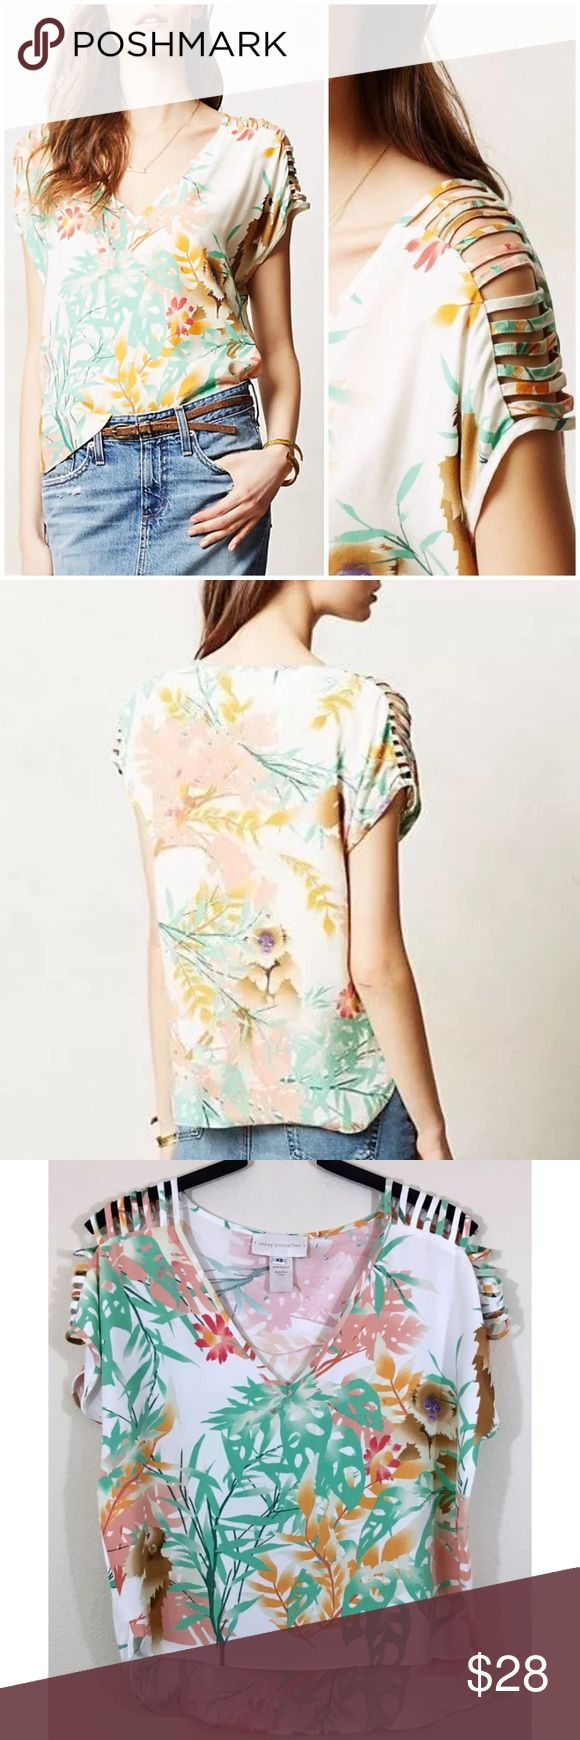 """Anthropologie Capuchin Monkey Cutout Sleeve Top With chic shoulder cut-outs, this silky tee's tropical print features playful monkeys. • By Corey Lynn Calter • Pullover styling • Polyester • Dry clean • Underarm to underarm laying flat measures 19"""" across, shoulder to hem measures 20"""" in front, 22"""" in back  • $98 retail, in great condition Anthropologie Tops Blouses"""